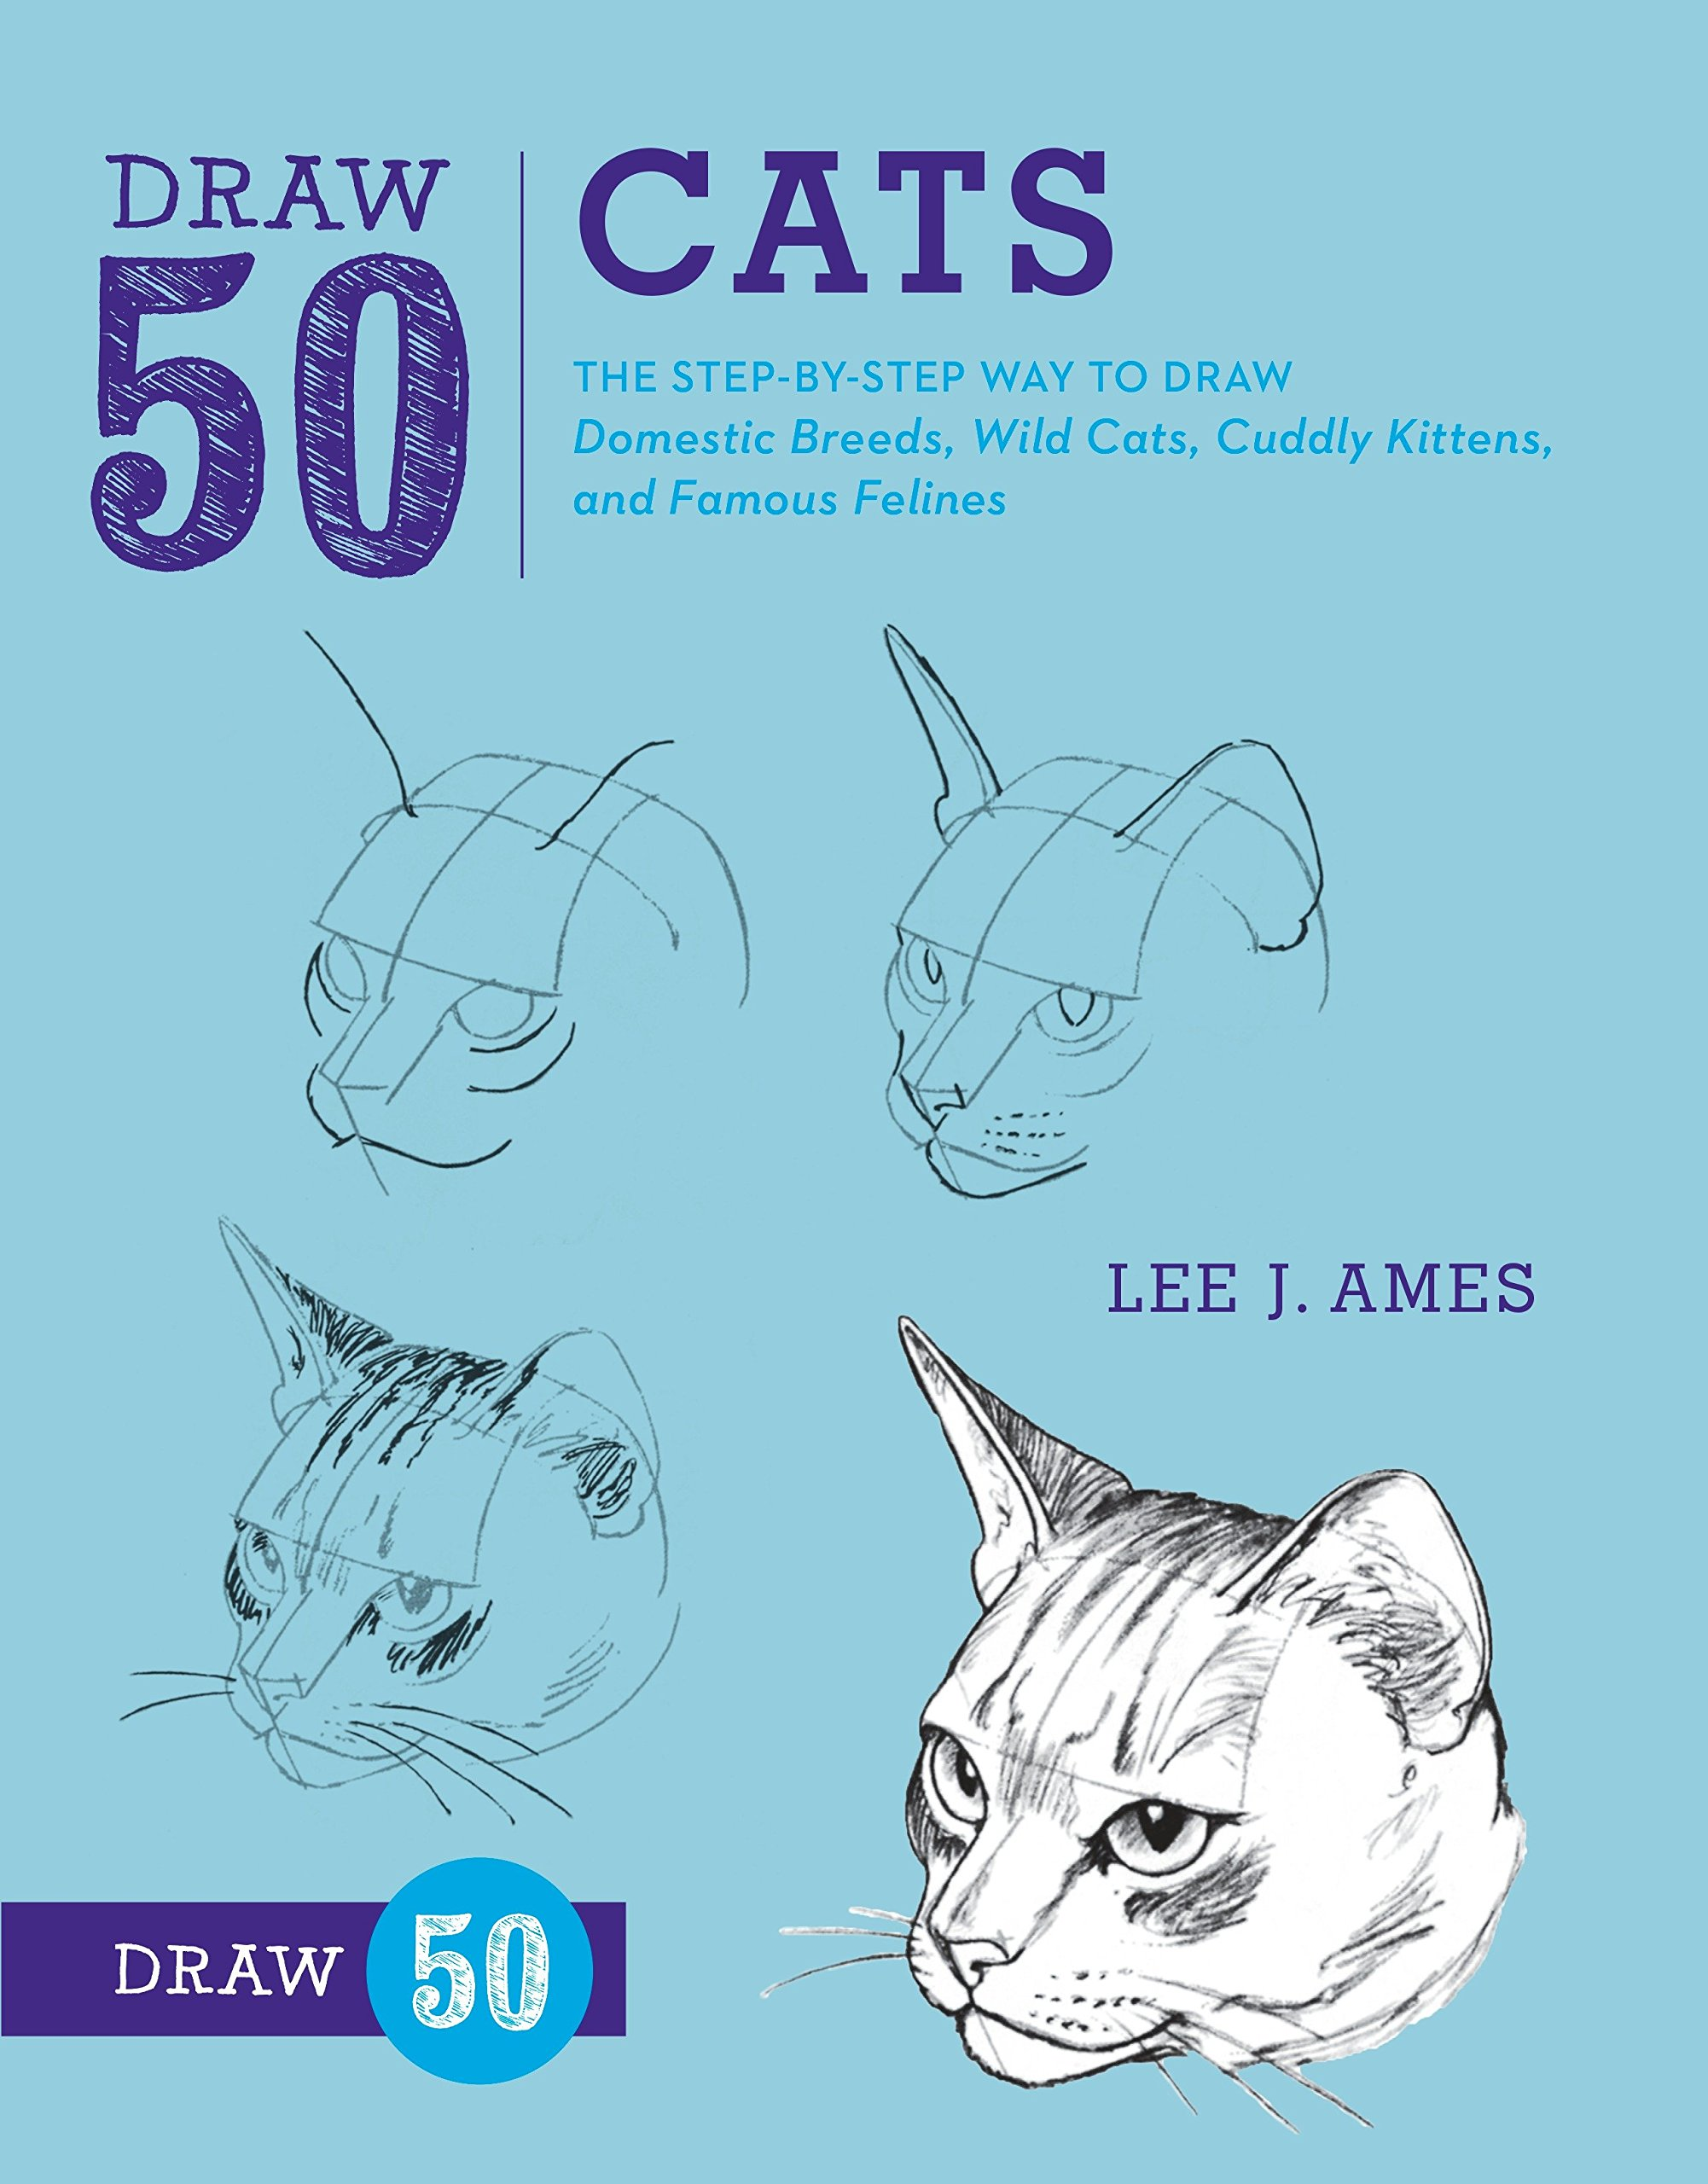 Read Online Draw 50 Cats: The Step-by-Step Way to Draw Domestic Breeds, Wild Cats, Cuddly Kittens, and Famous Felines ebook